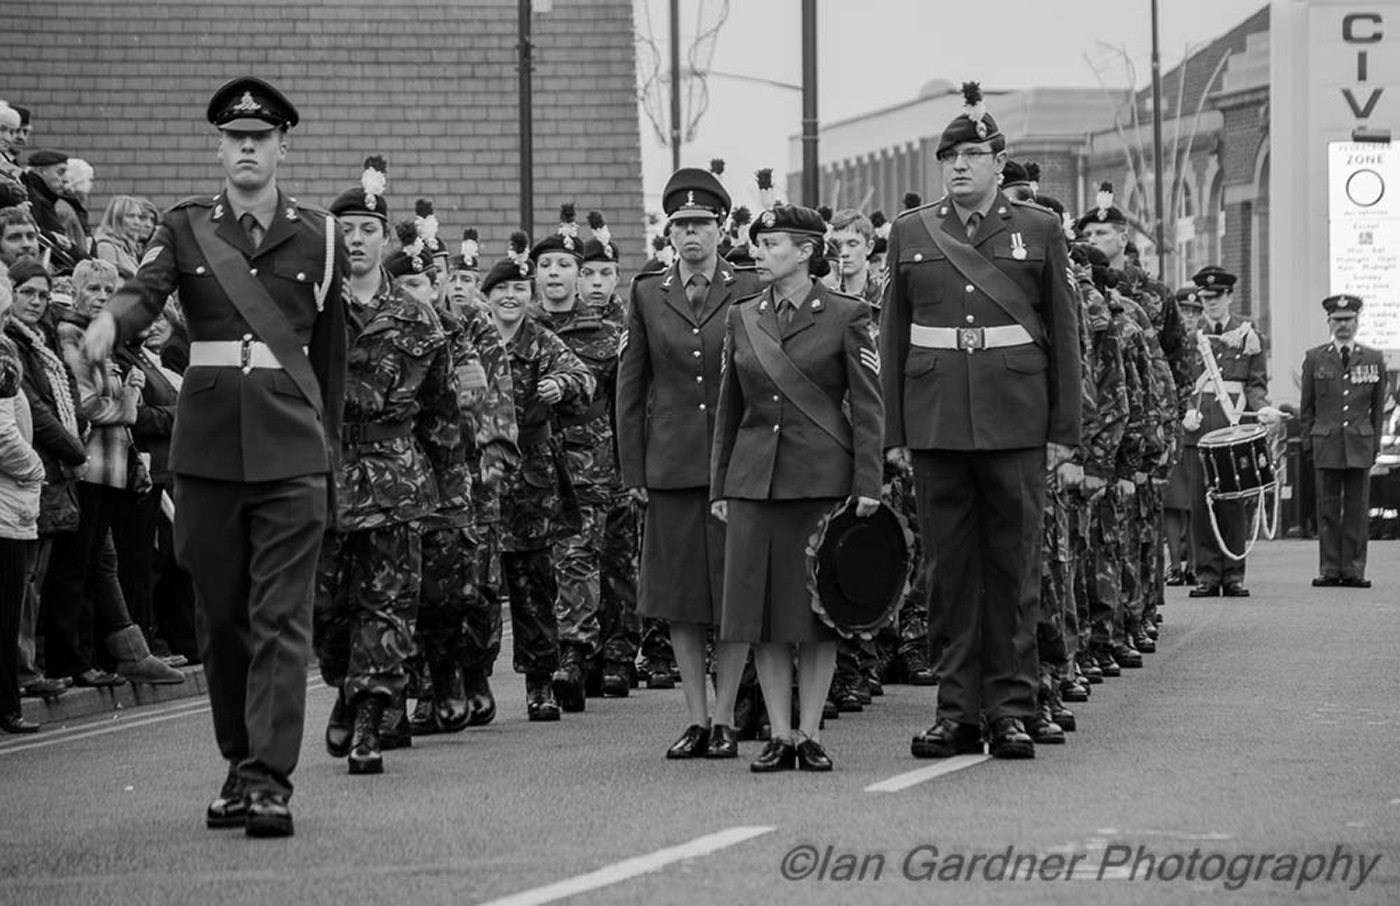 Army Cadets Marching by Ian Gardner